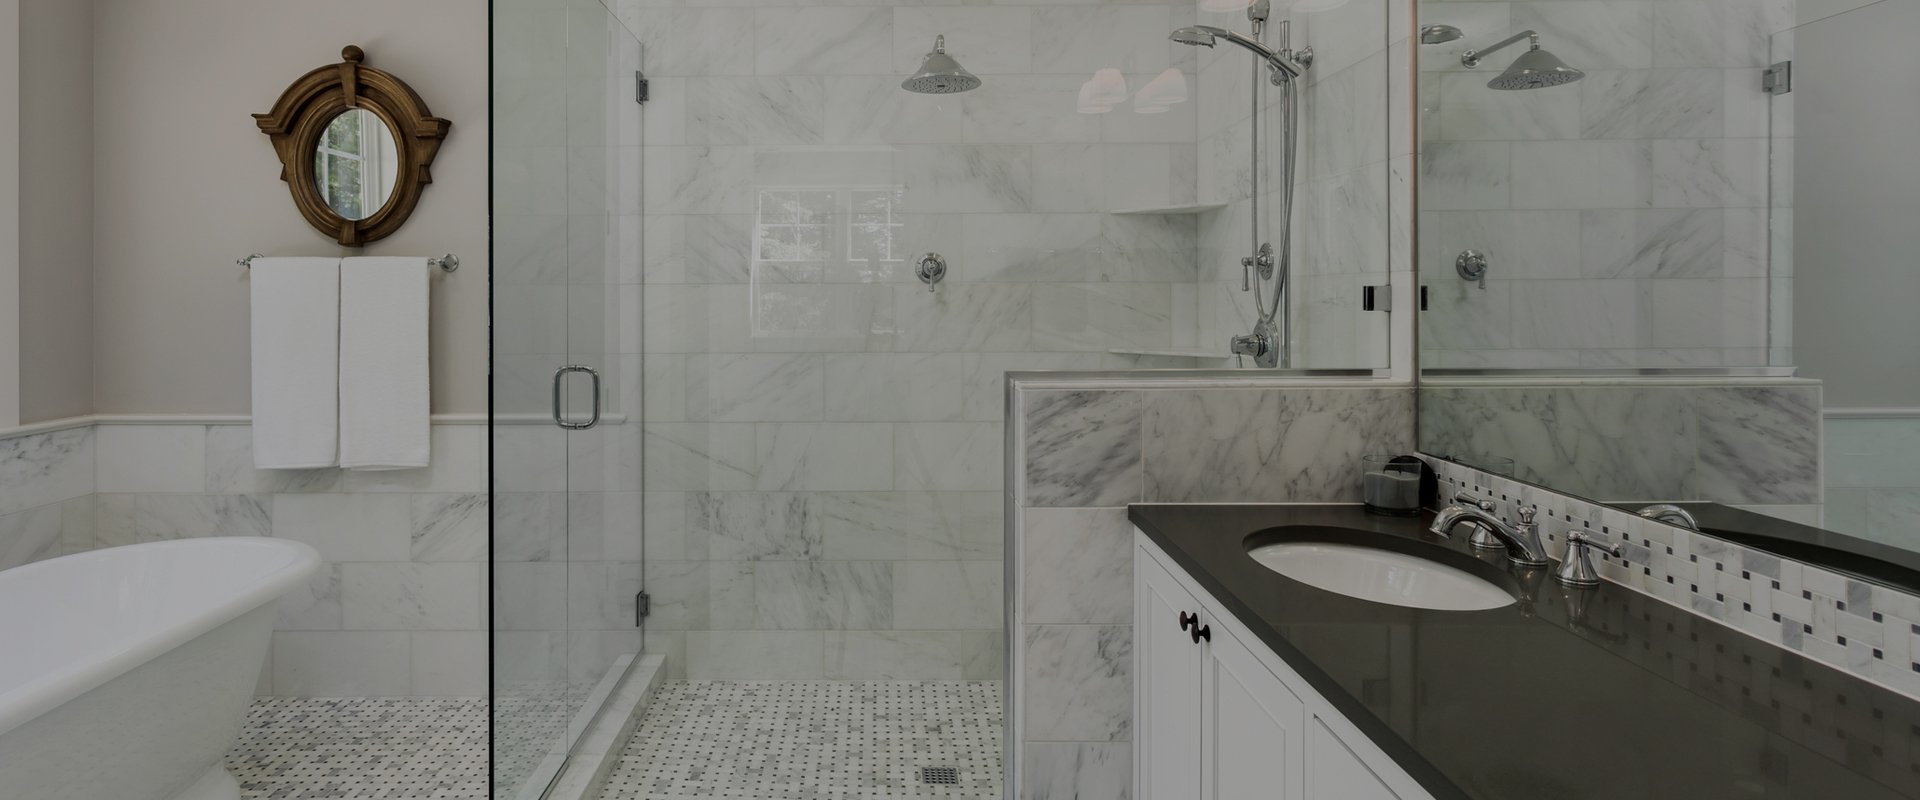 white tiled bathroom shower